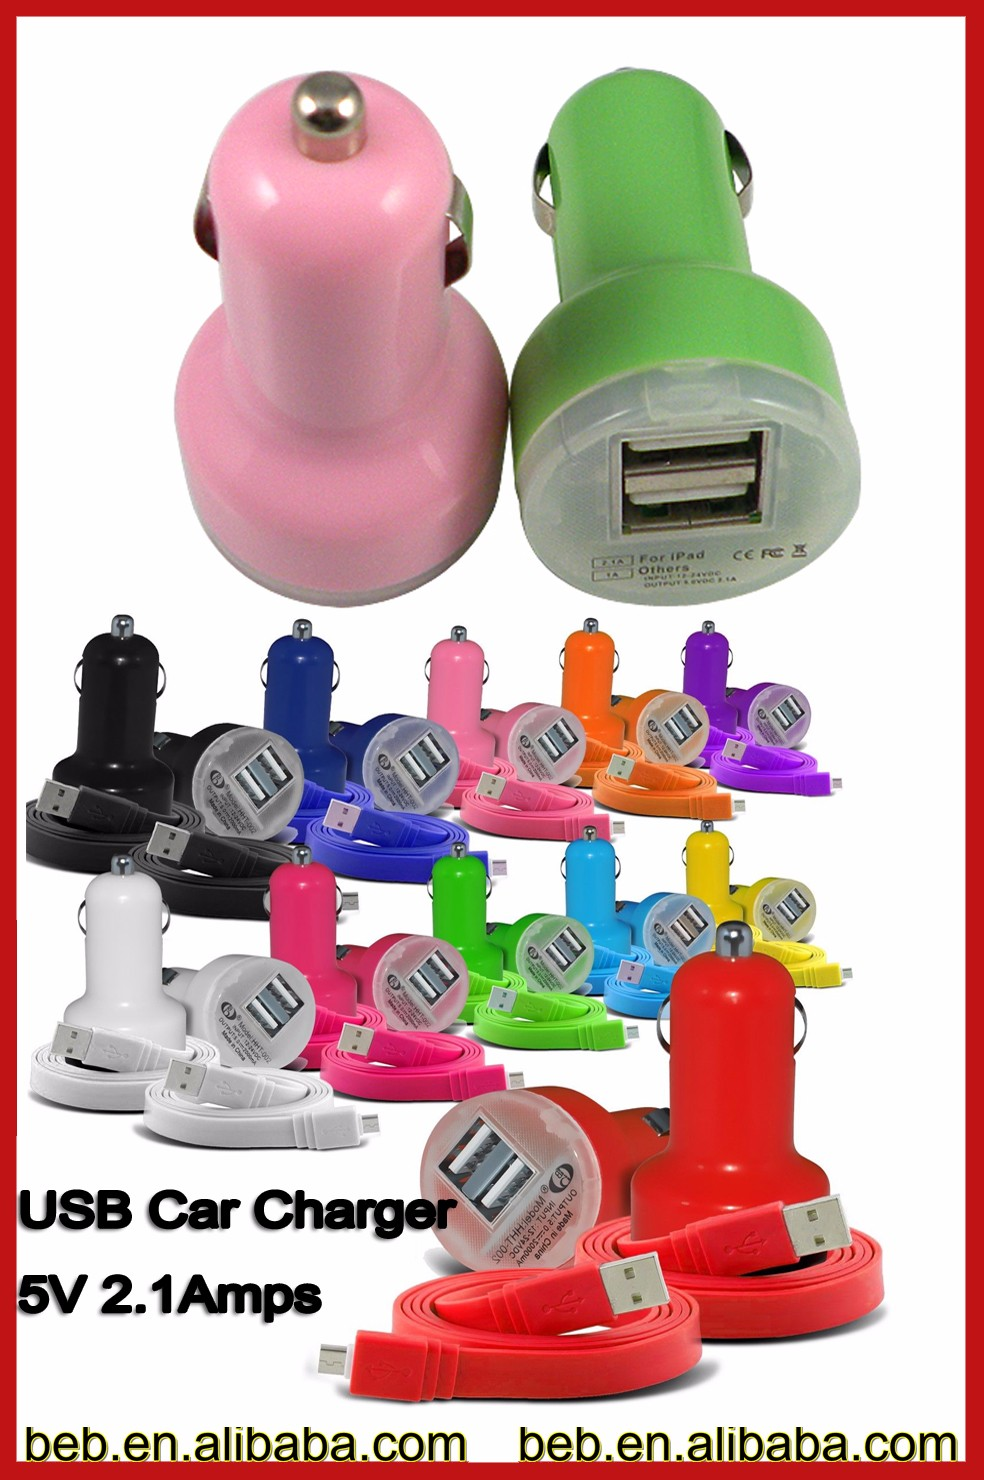 Manufacture 5v 2100ma car charger usb for iphone 6 plus